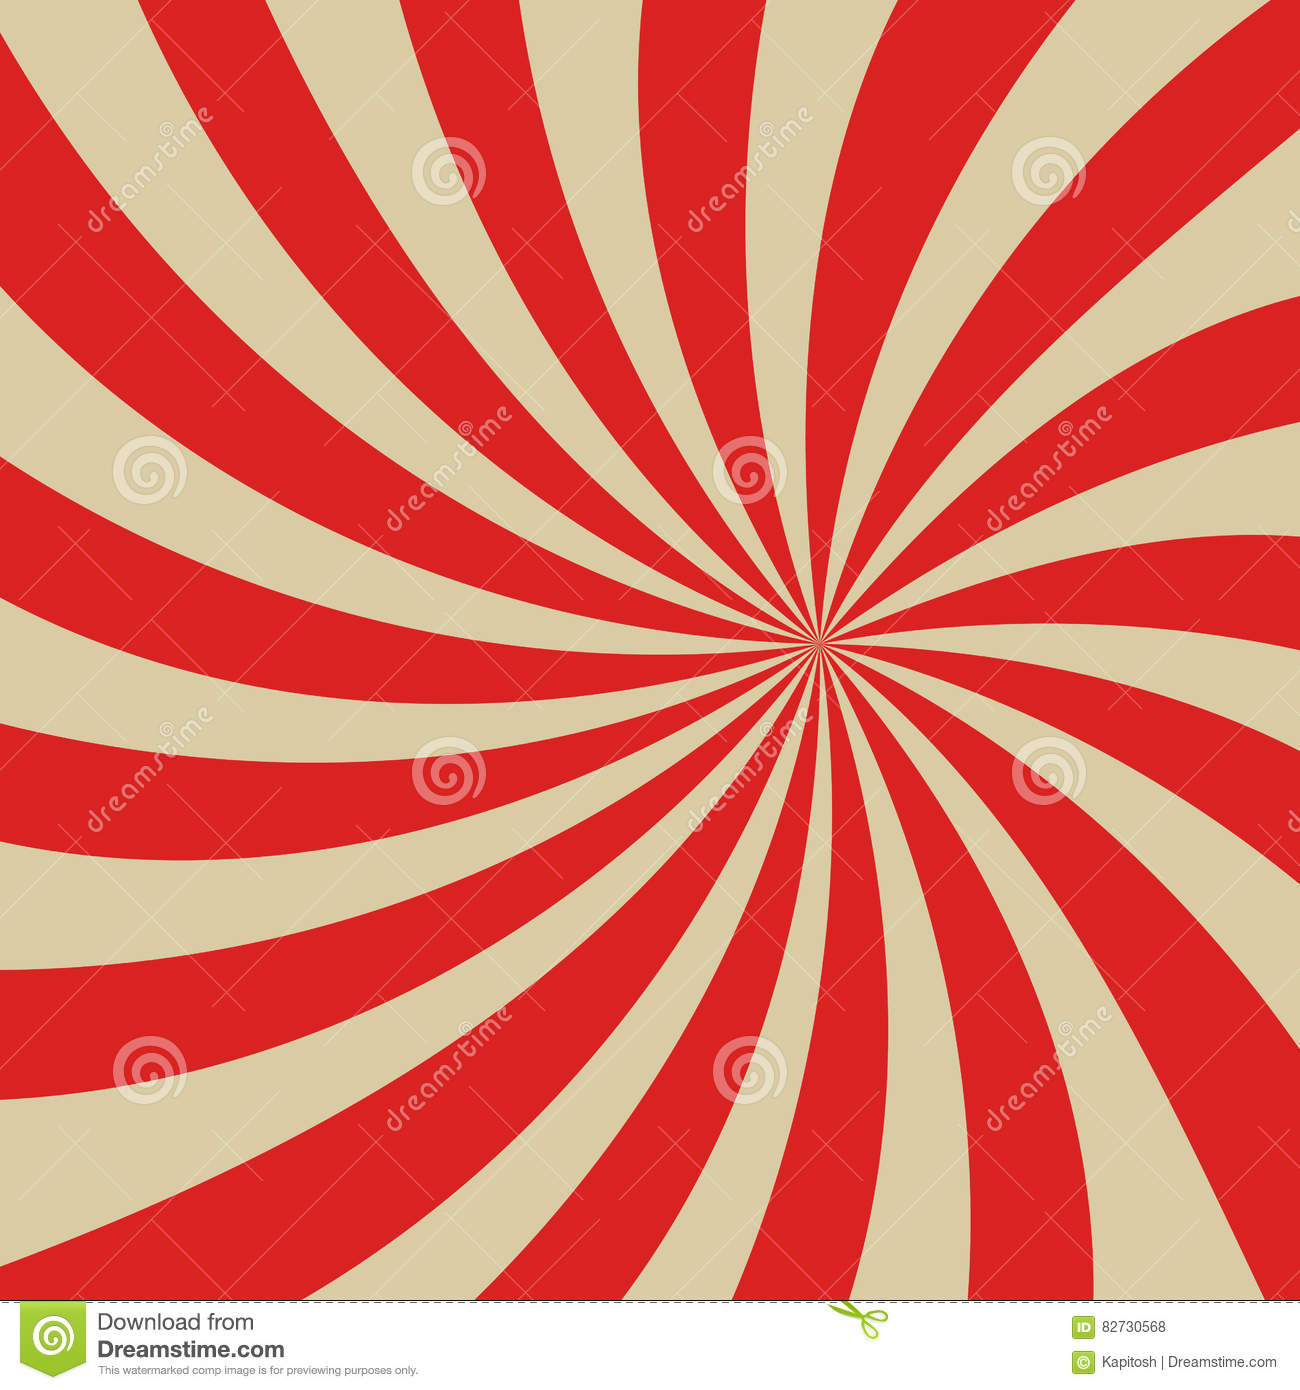 Redbackground pop art stock vector. Illustration of cone - 82730568